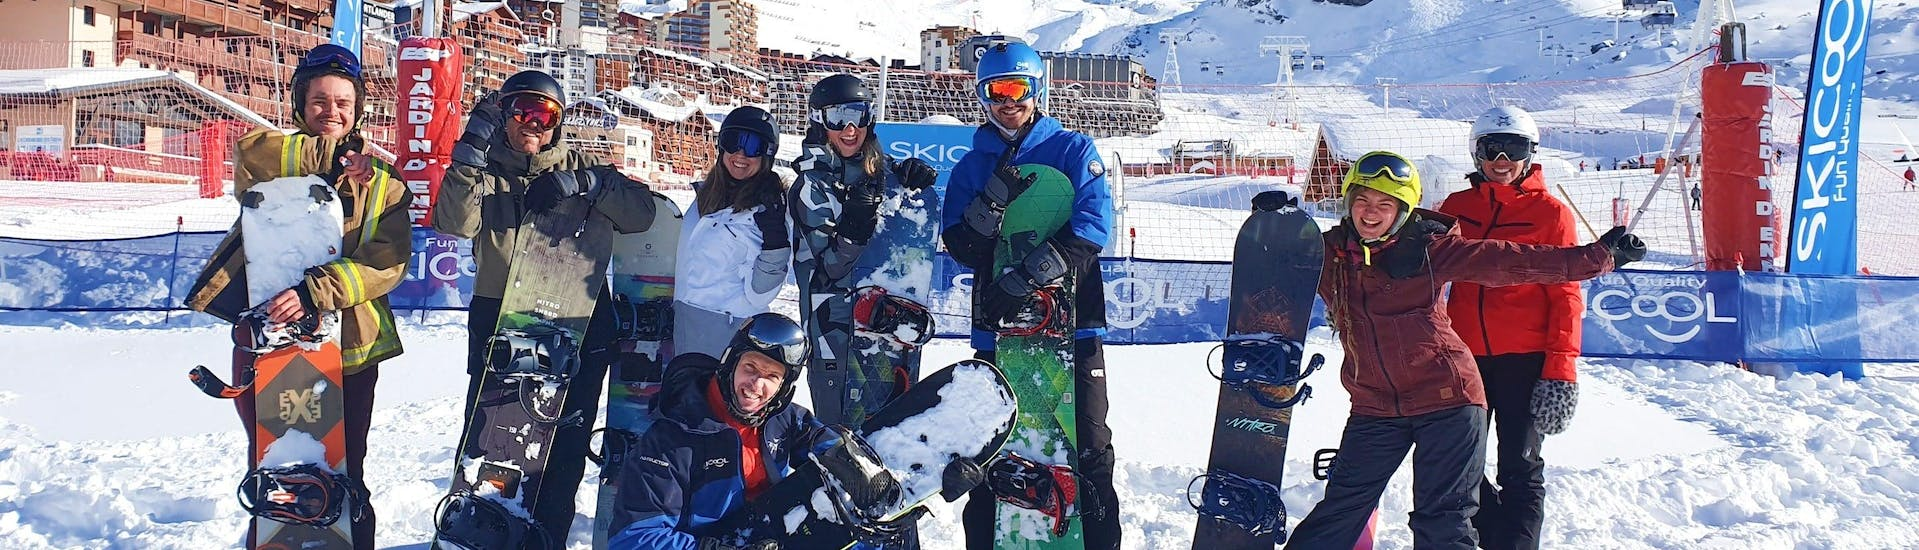 Snowboarders are posing in front of the resort of Val Thorens at the end of their Snowboarding Lessons (from 8 y.) - Morning with Ski Cool Val Thorens.